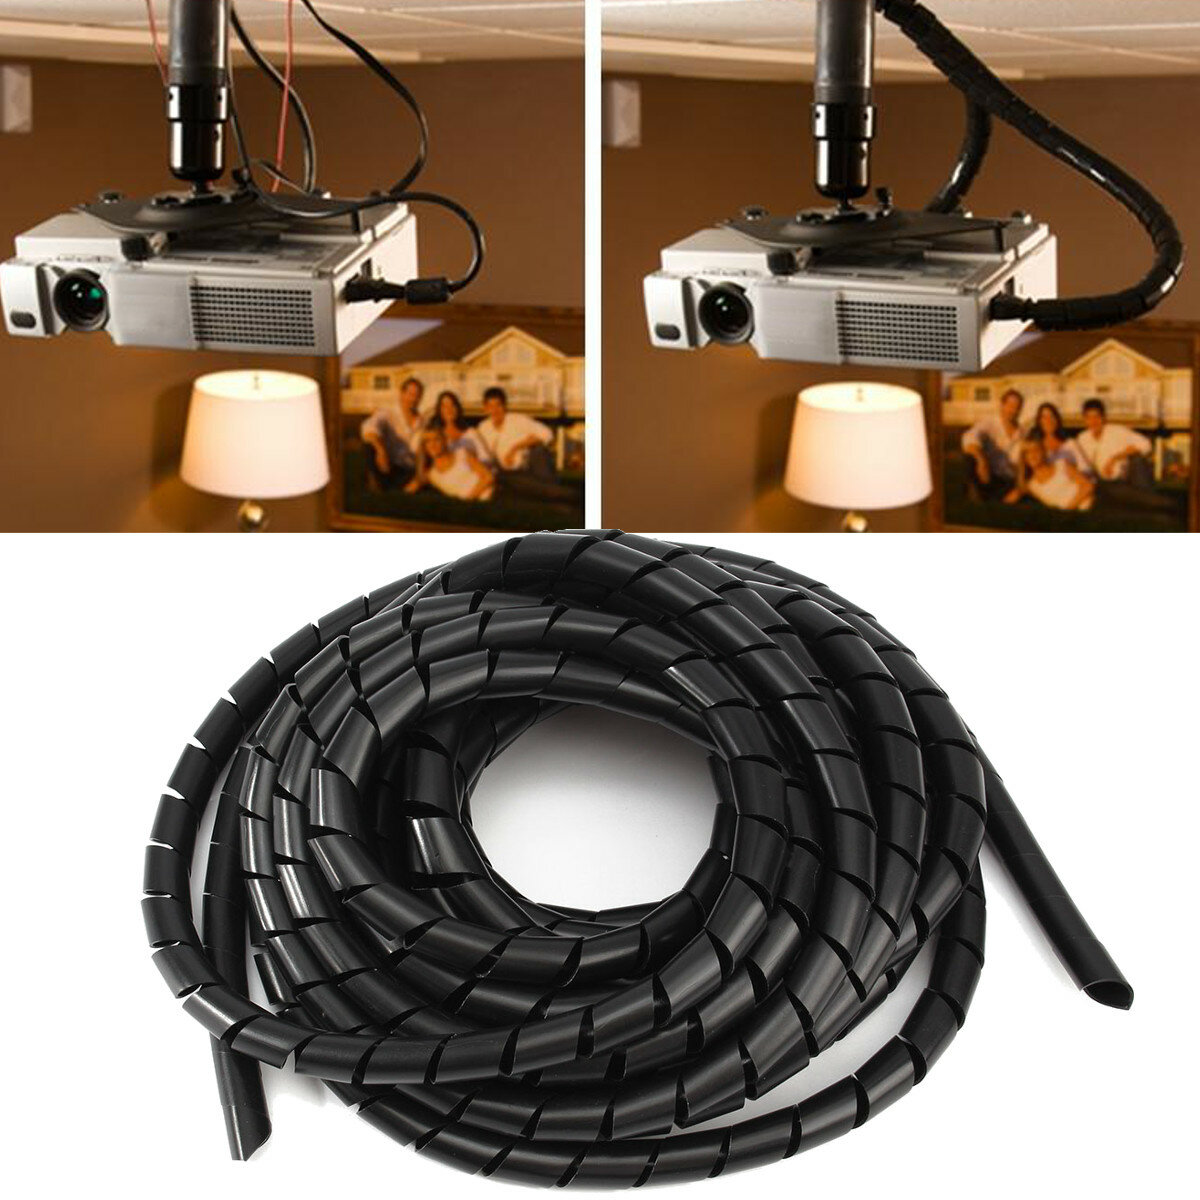 6m Tidy Wire Pc Tv Organising Wrapping Cable Cover Spiral Office Wiring A Light Fixture To Cord Tube Manage